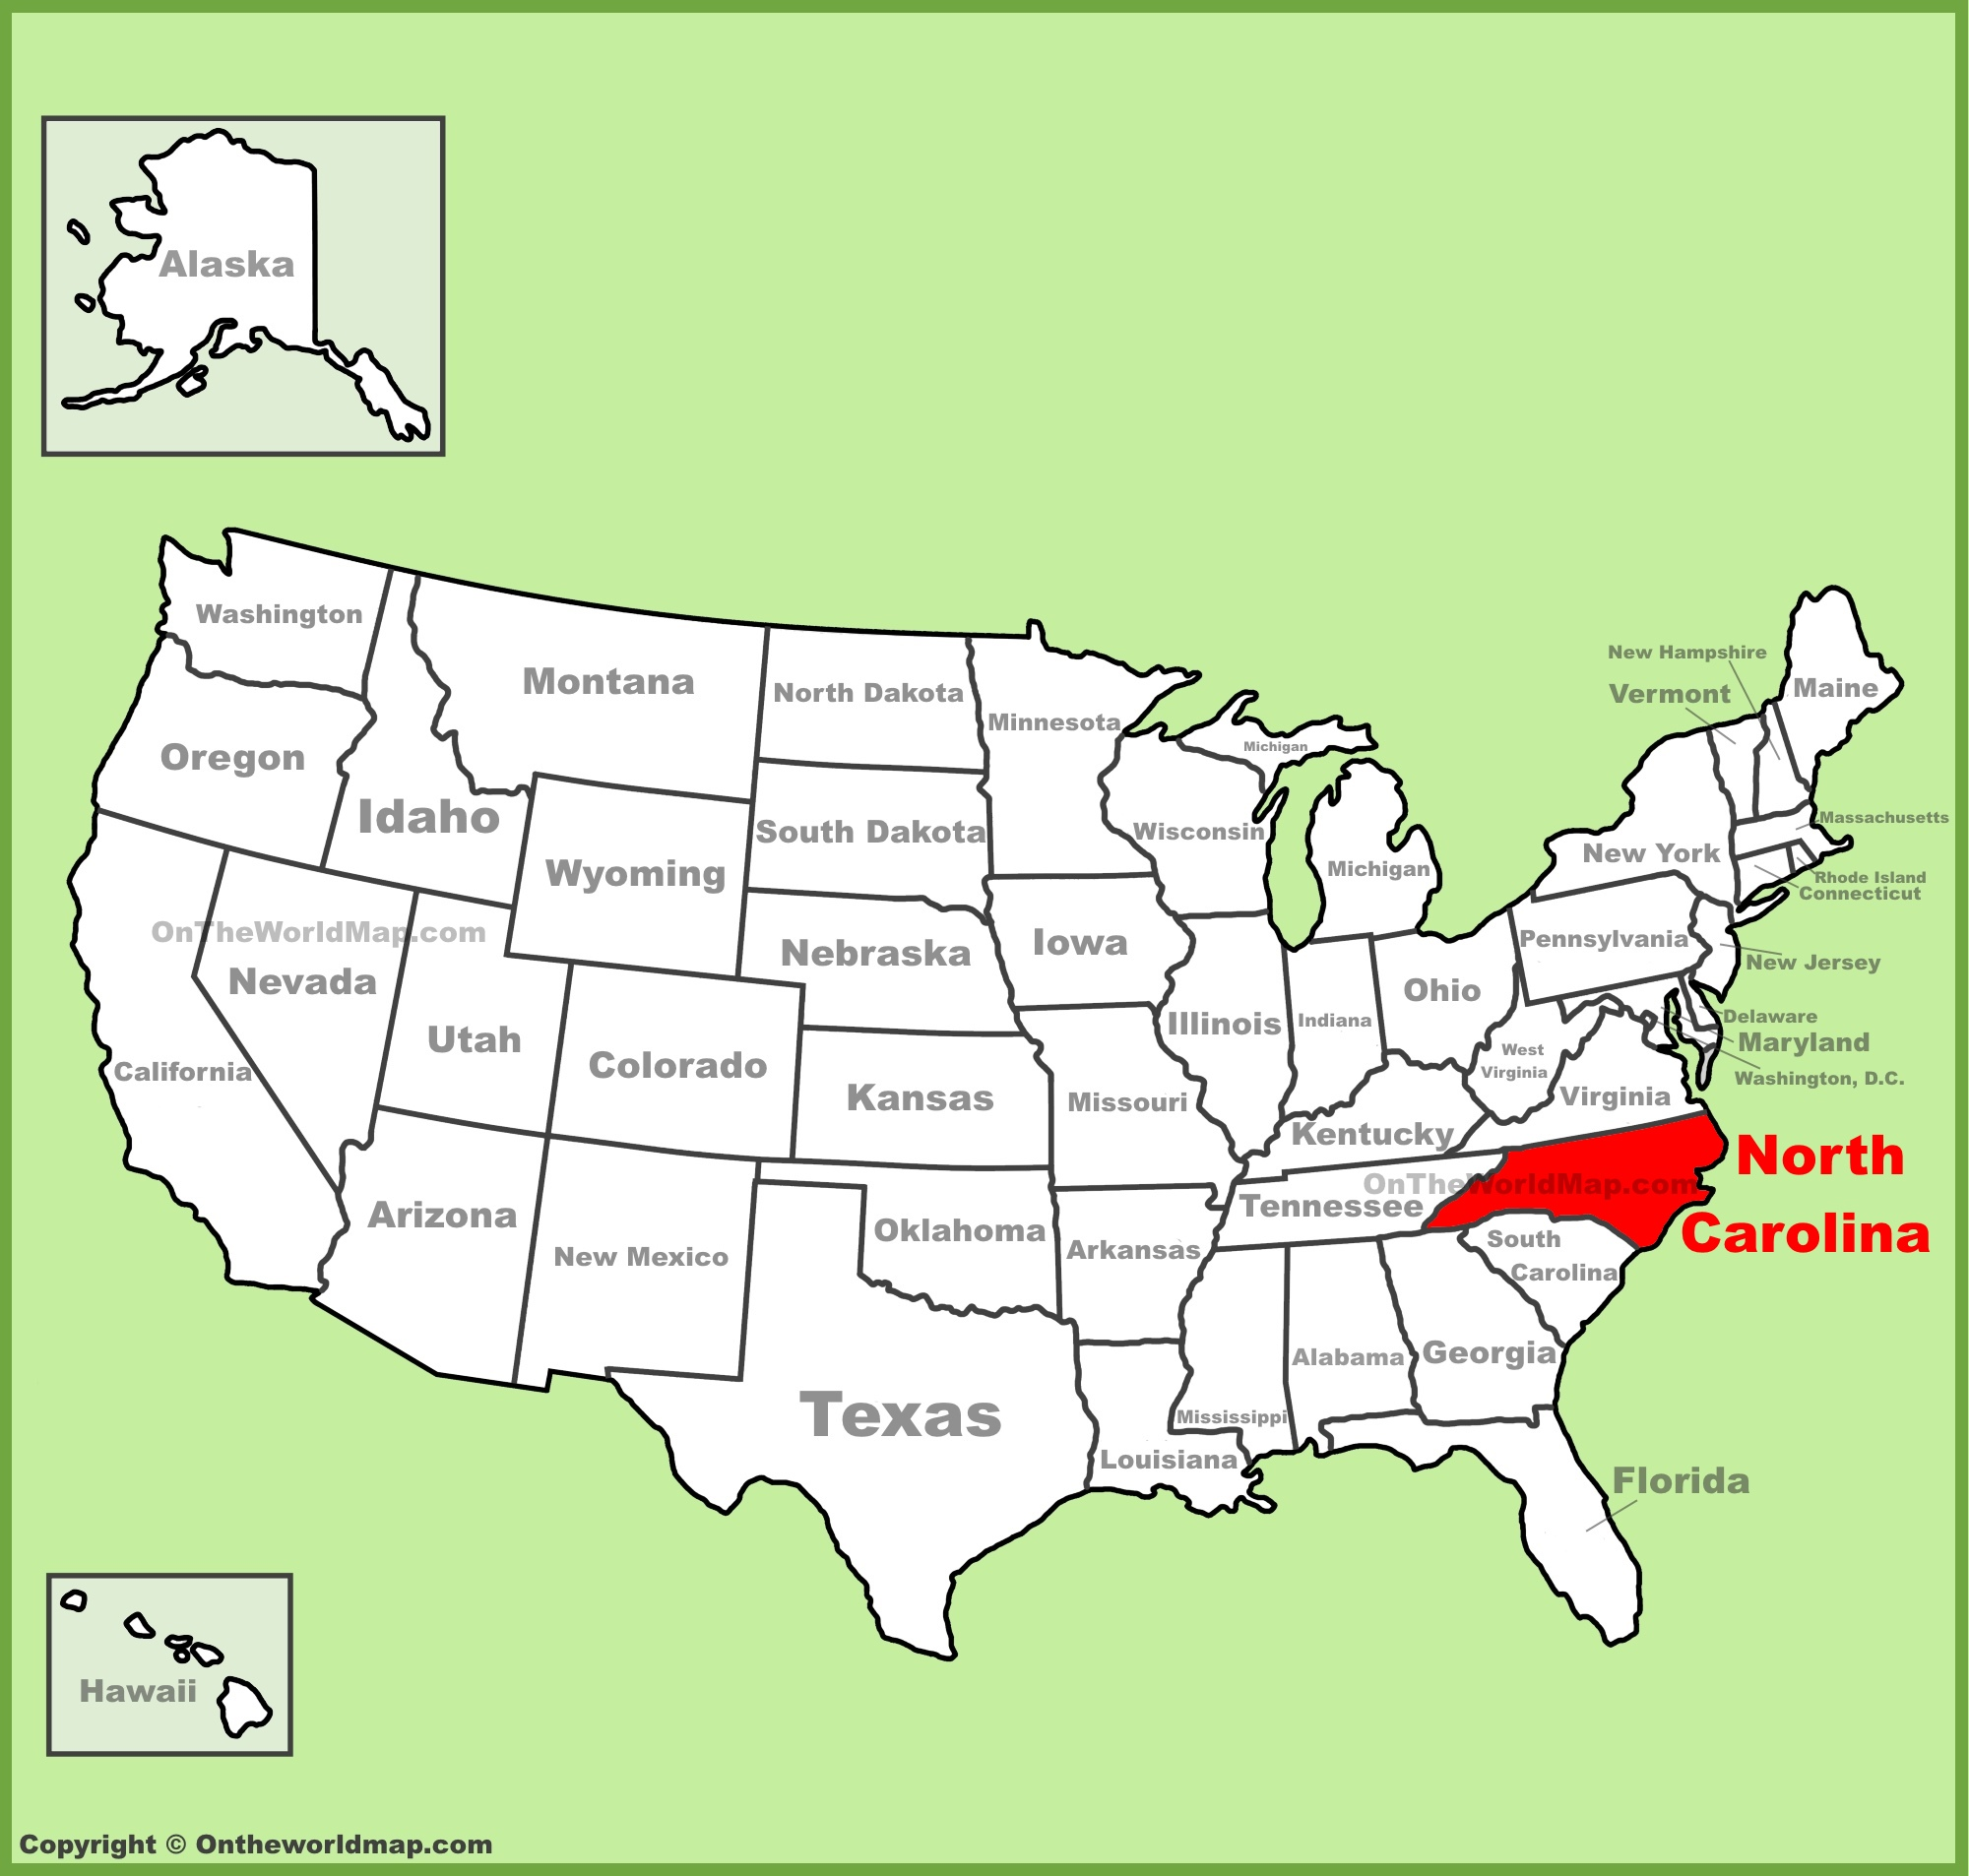 The Map Of North Carolina North Carolina State Maps | USA | Maps of North Carolina (NC)